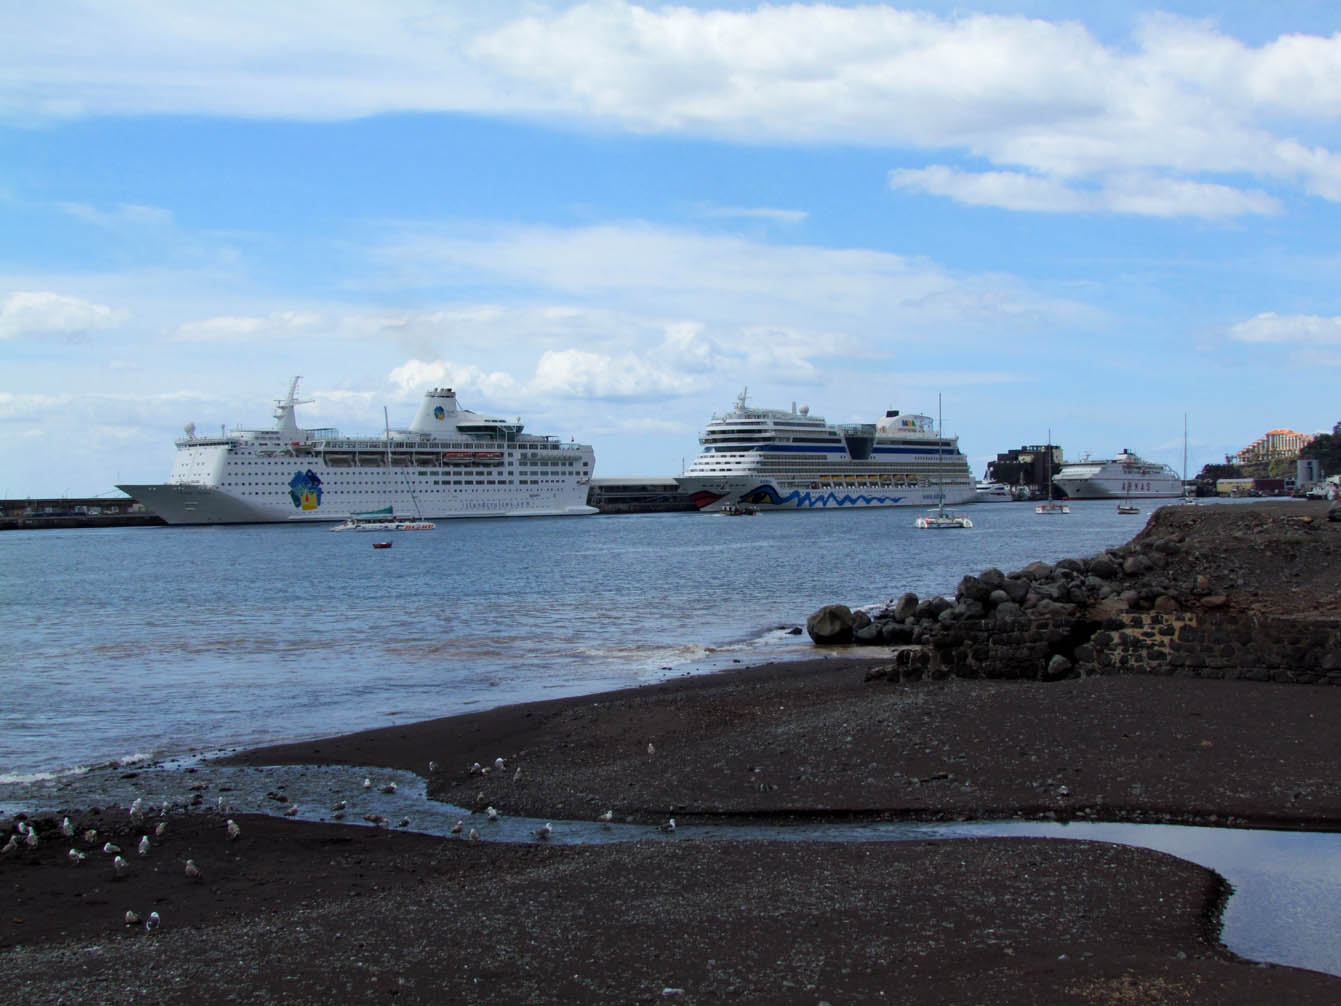 the beach and the cruise ships